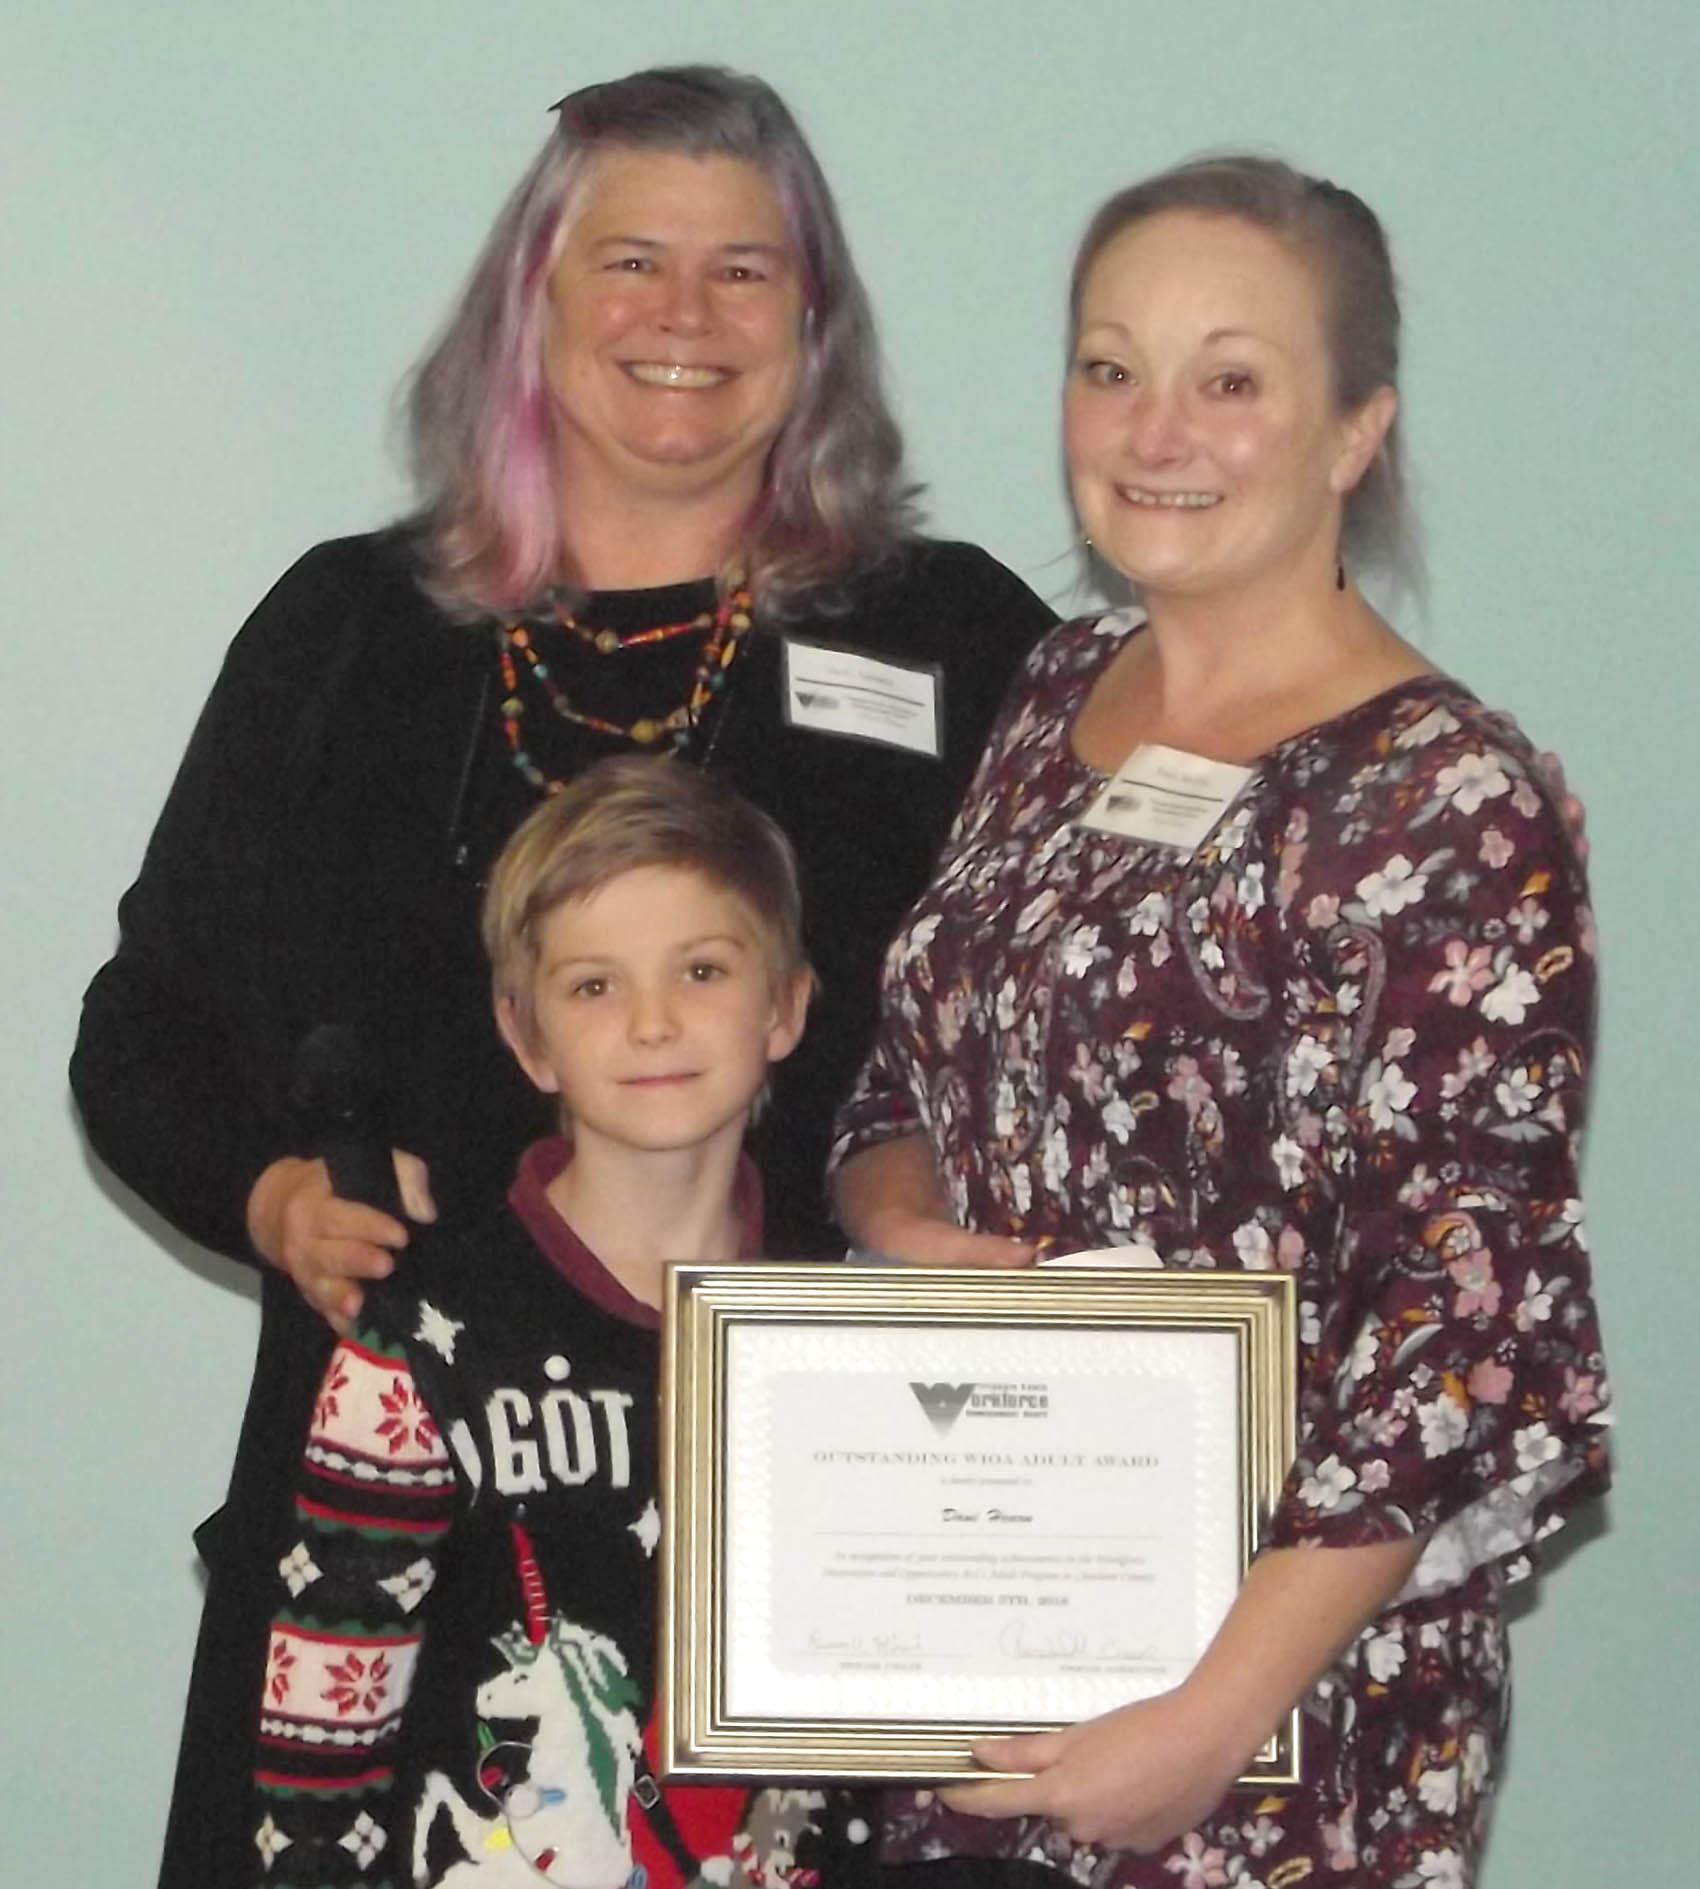 Click to enlarge,  Dani Hearn, of Chatham County, pictured with her son, received the Outstanding WIOA Adult Award at the 7th Annual Triangle South Workforce Development Board (TSWDB) Awards Banquet held Wednesday, Dec. 5, at the Central Carolina Community College Harnett Health Sciences Center in Lillington. Presenting the award was Vicki Newell, TSWDB Member.